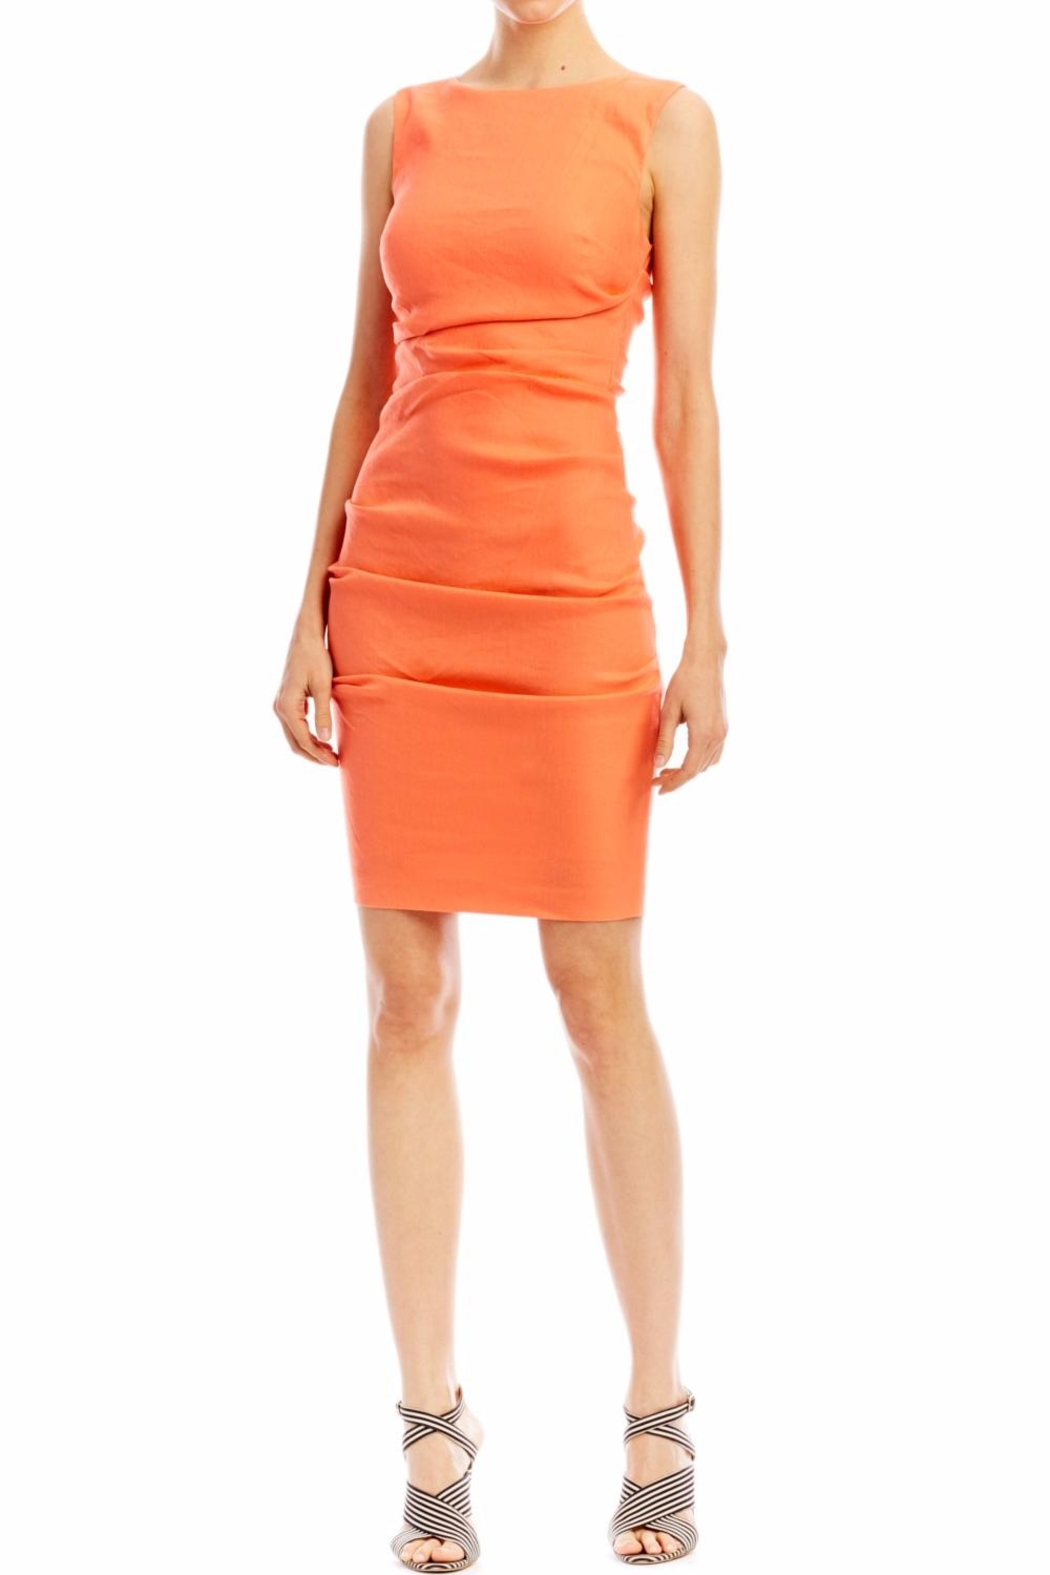 Nicole Miller Lauren Stretch Dress - Front Cropped Image